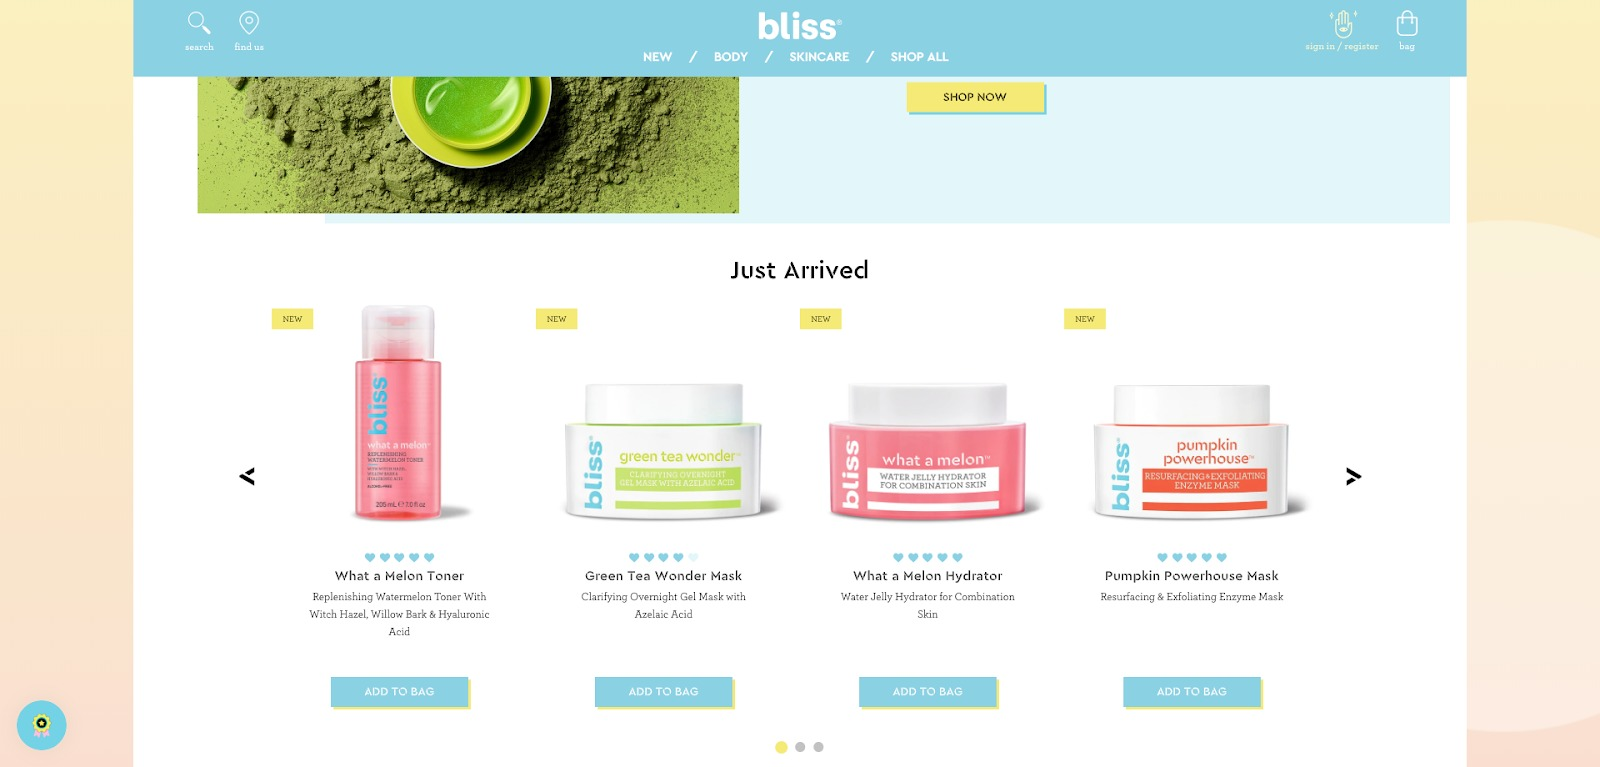 Bliss homepage